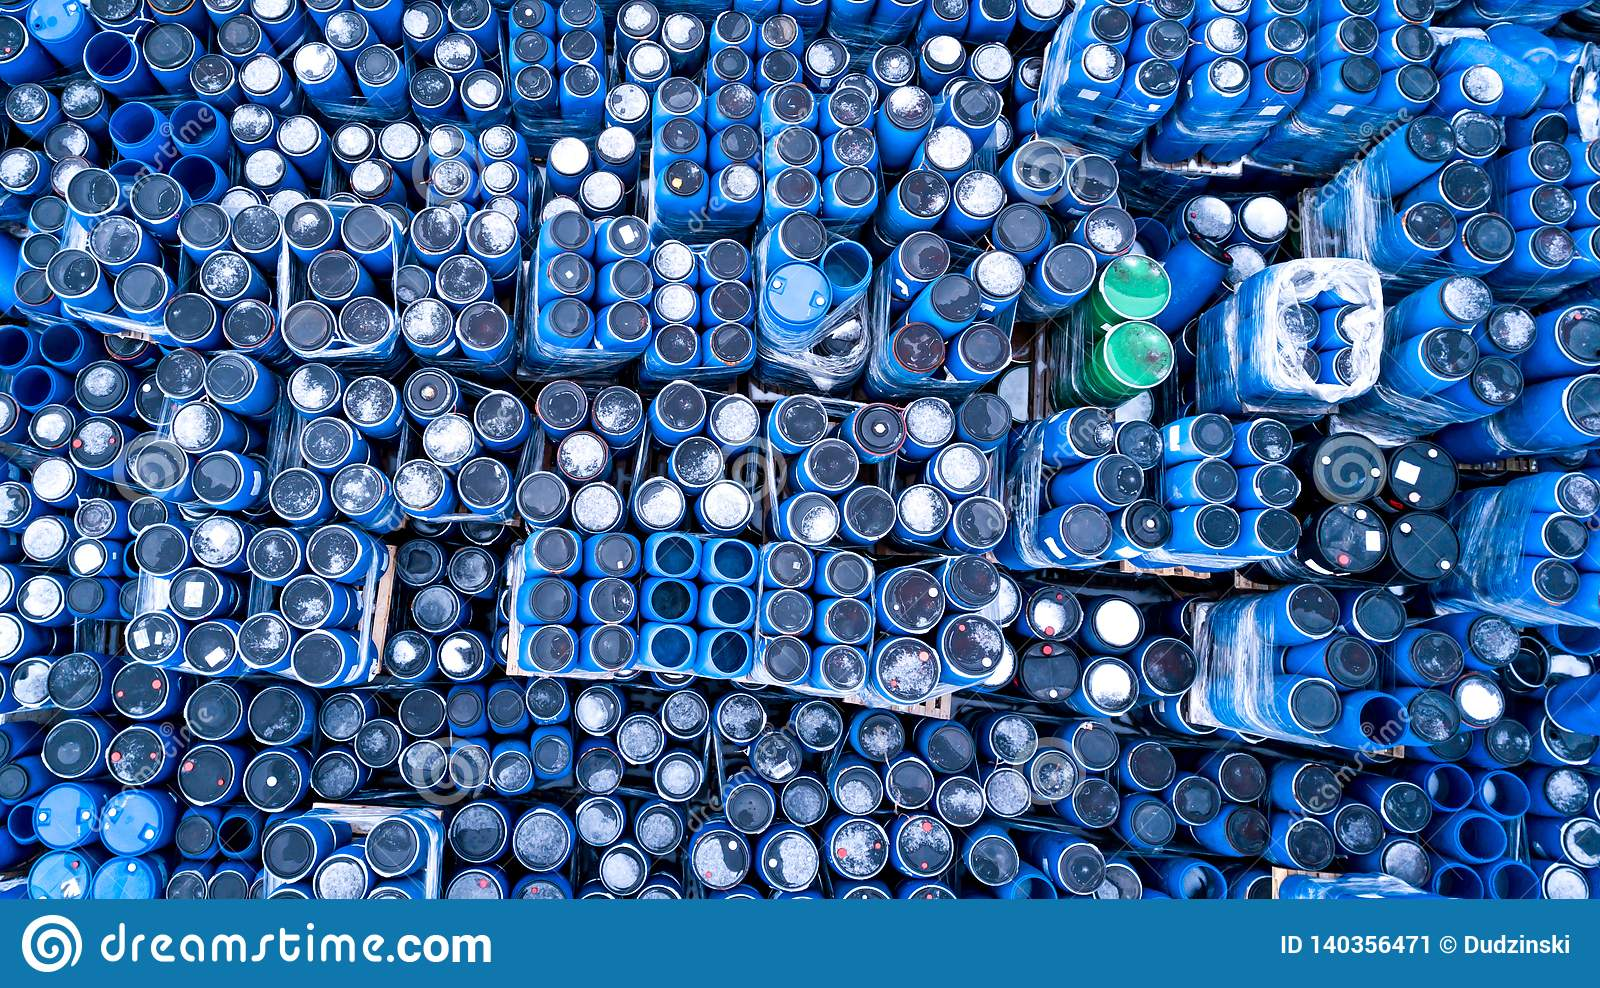 Warehouses for refrigeration plants, containers. Barrels